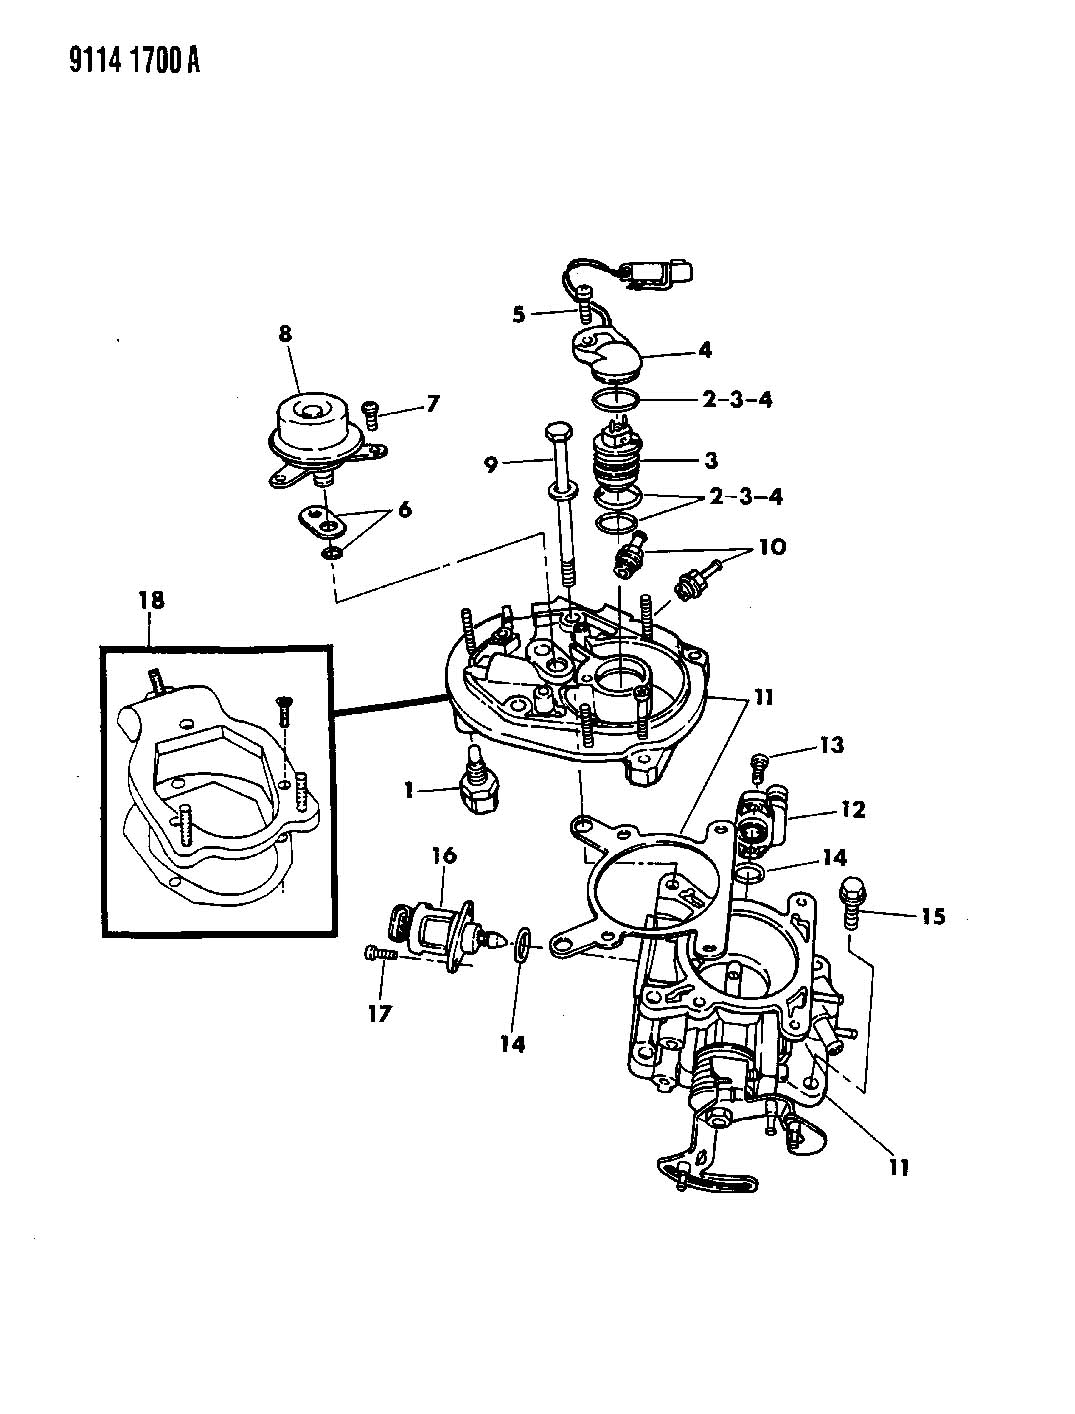 Service manual [Exploded View 2002 Chrysler Town Country